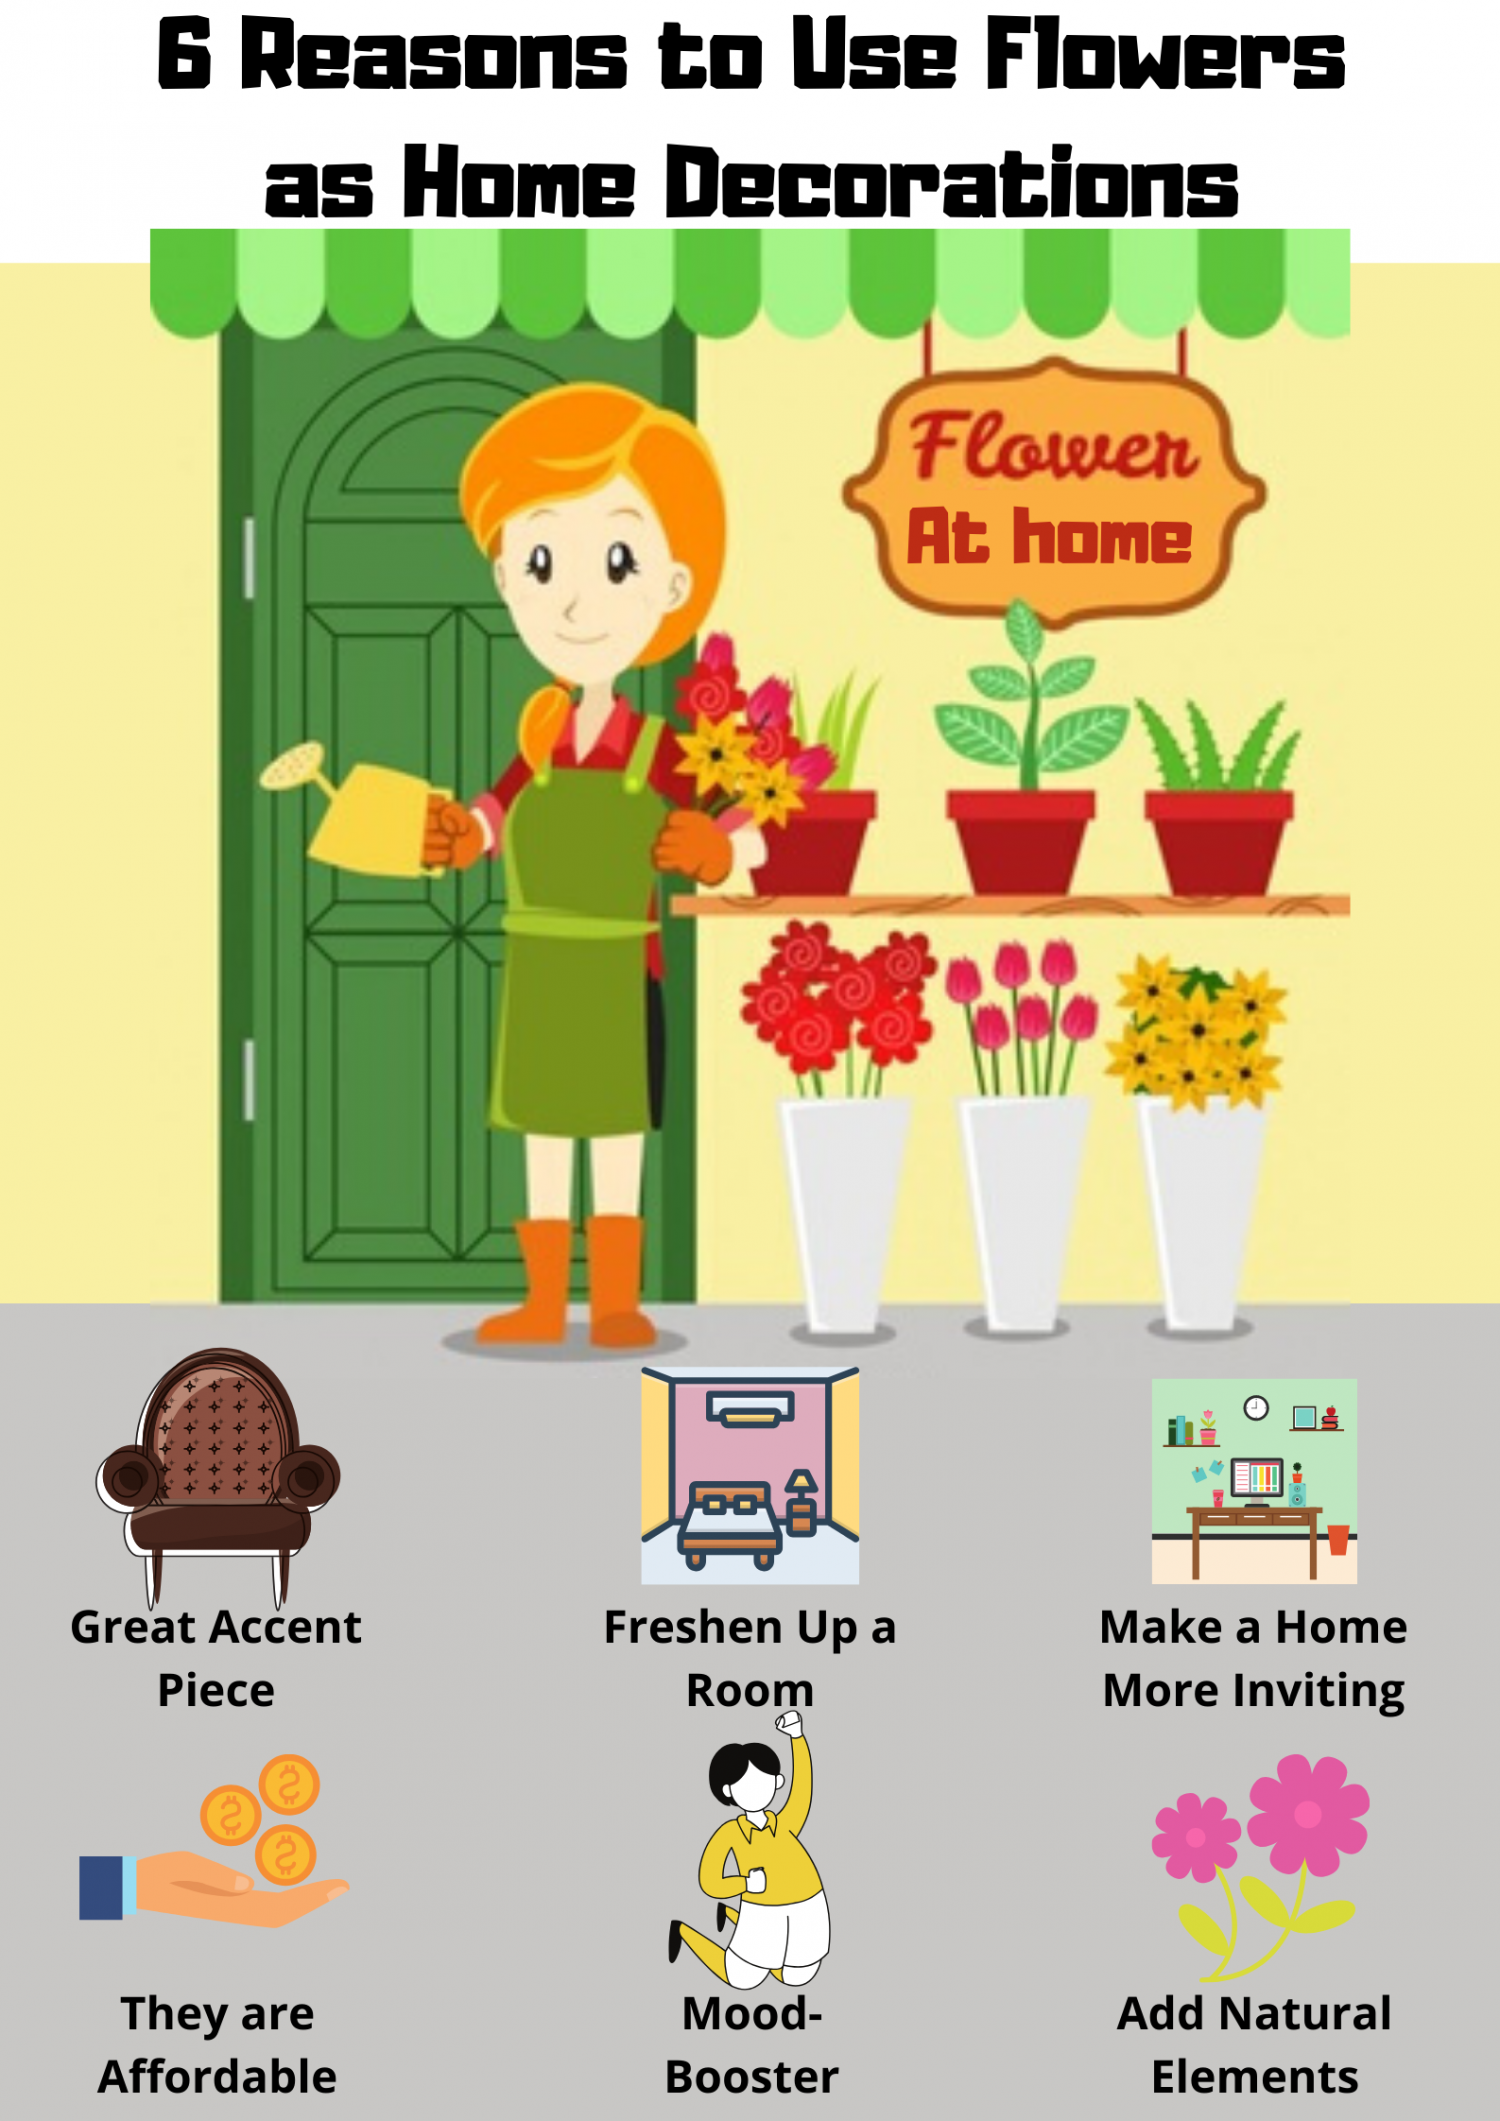 6 Reasons to Use Flowers as Home Decorations Infographic